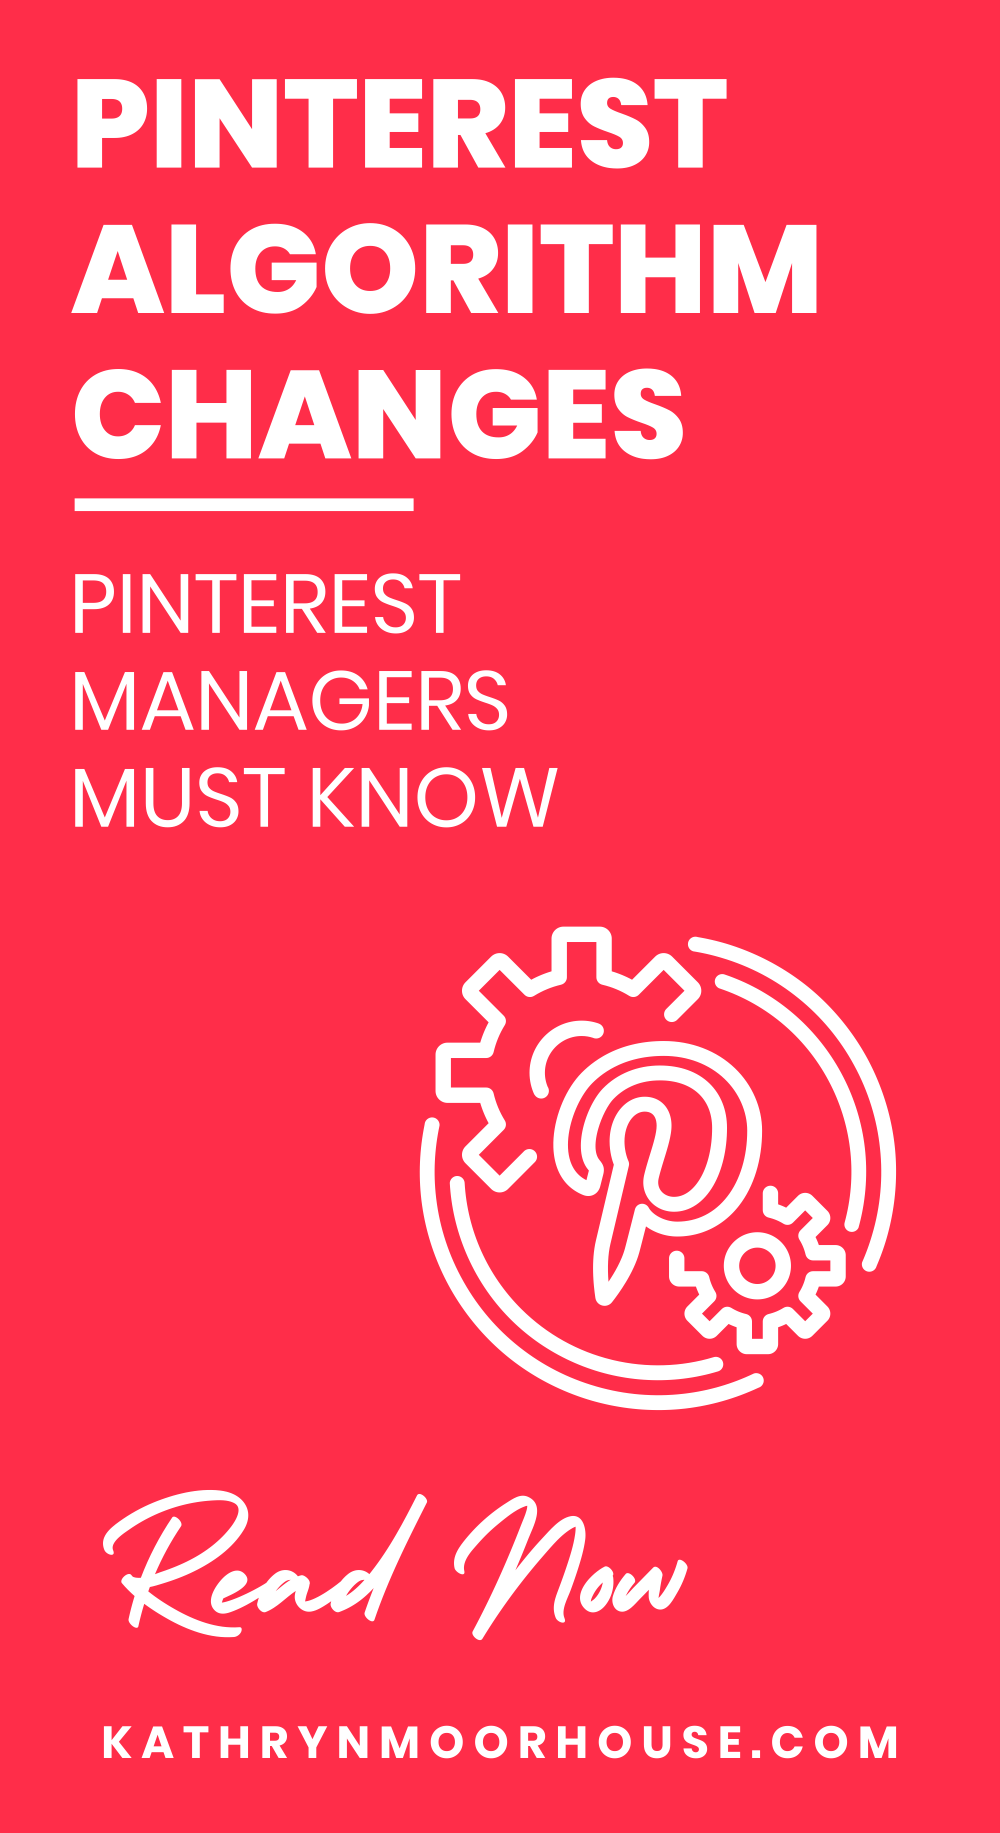 pinterest algorithm changes pinterest managers must know about